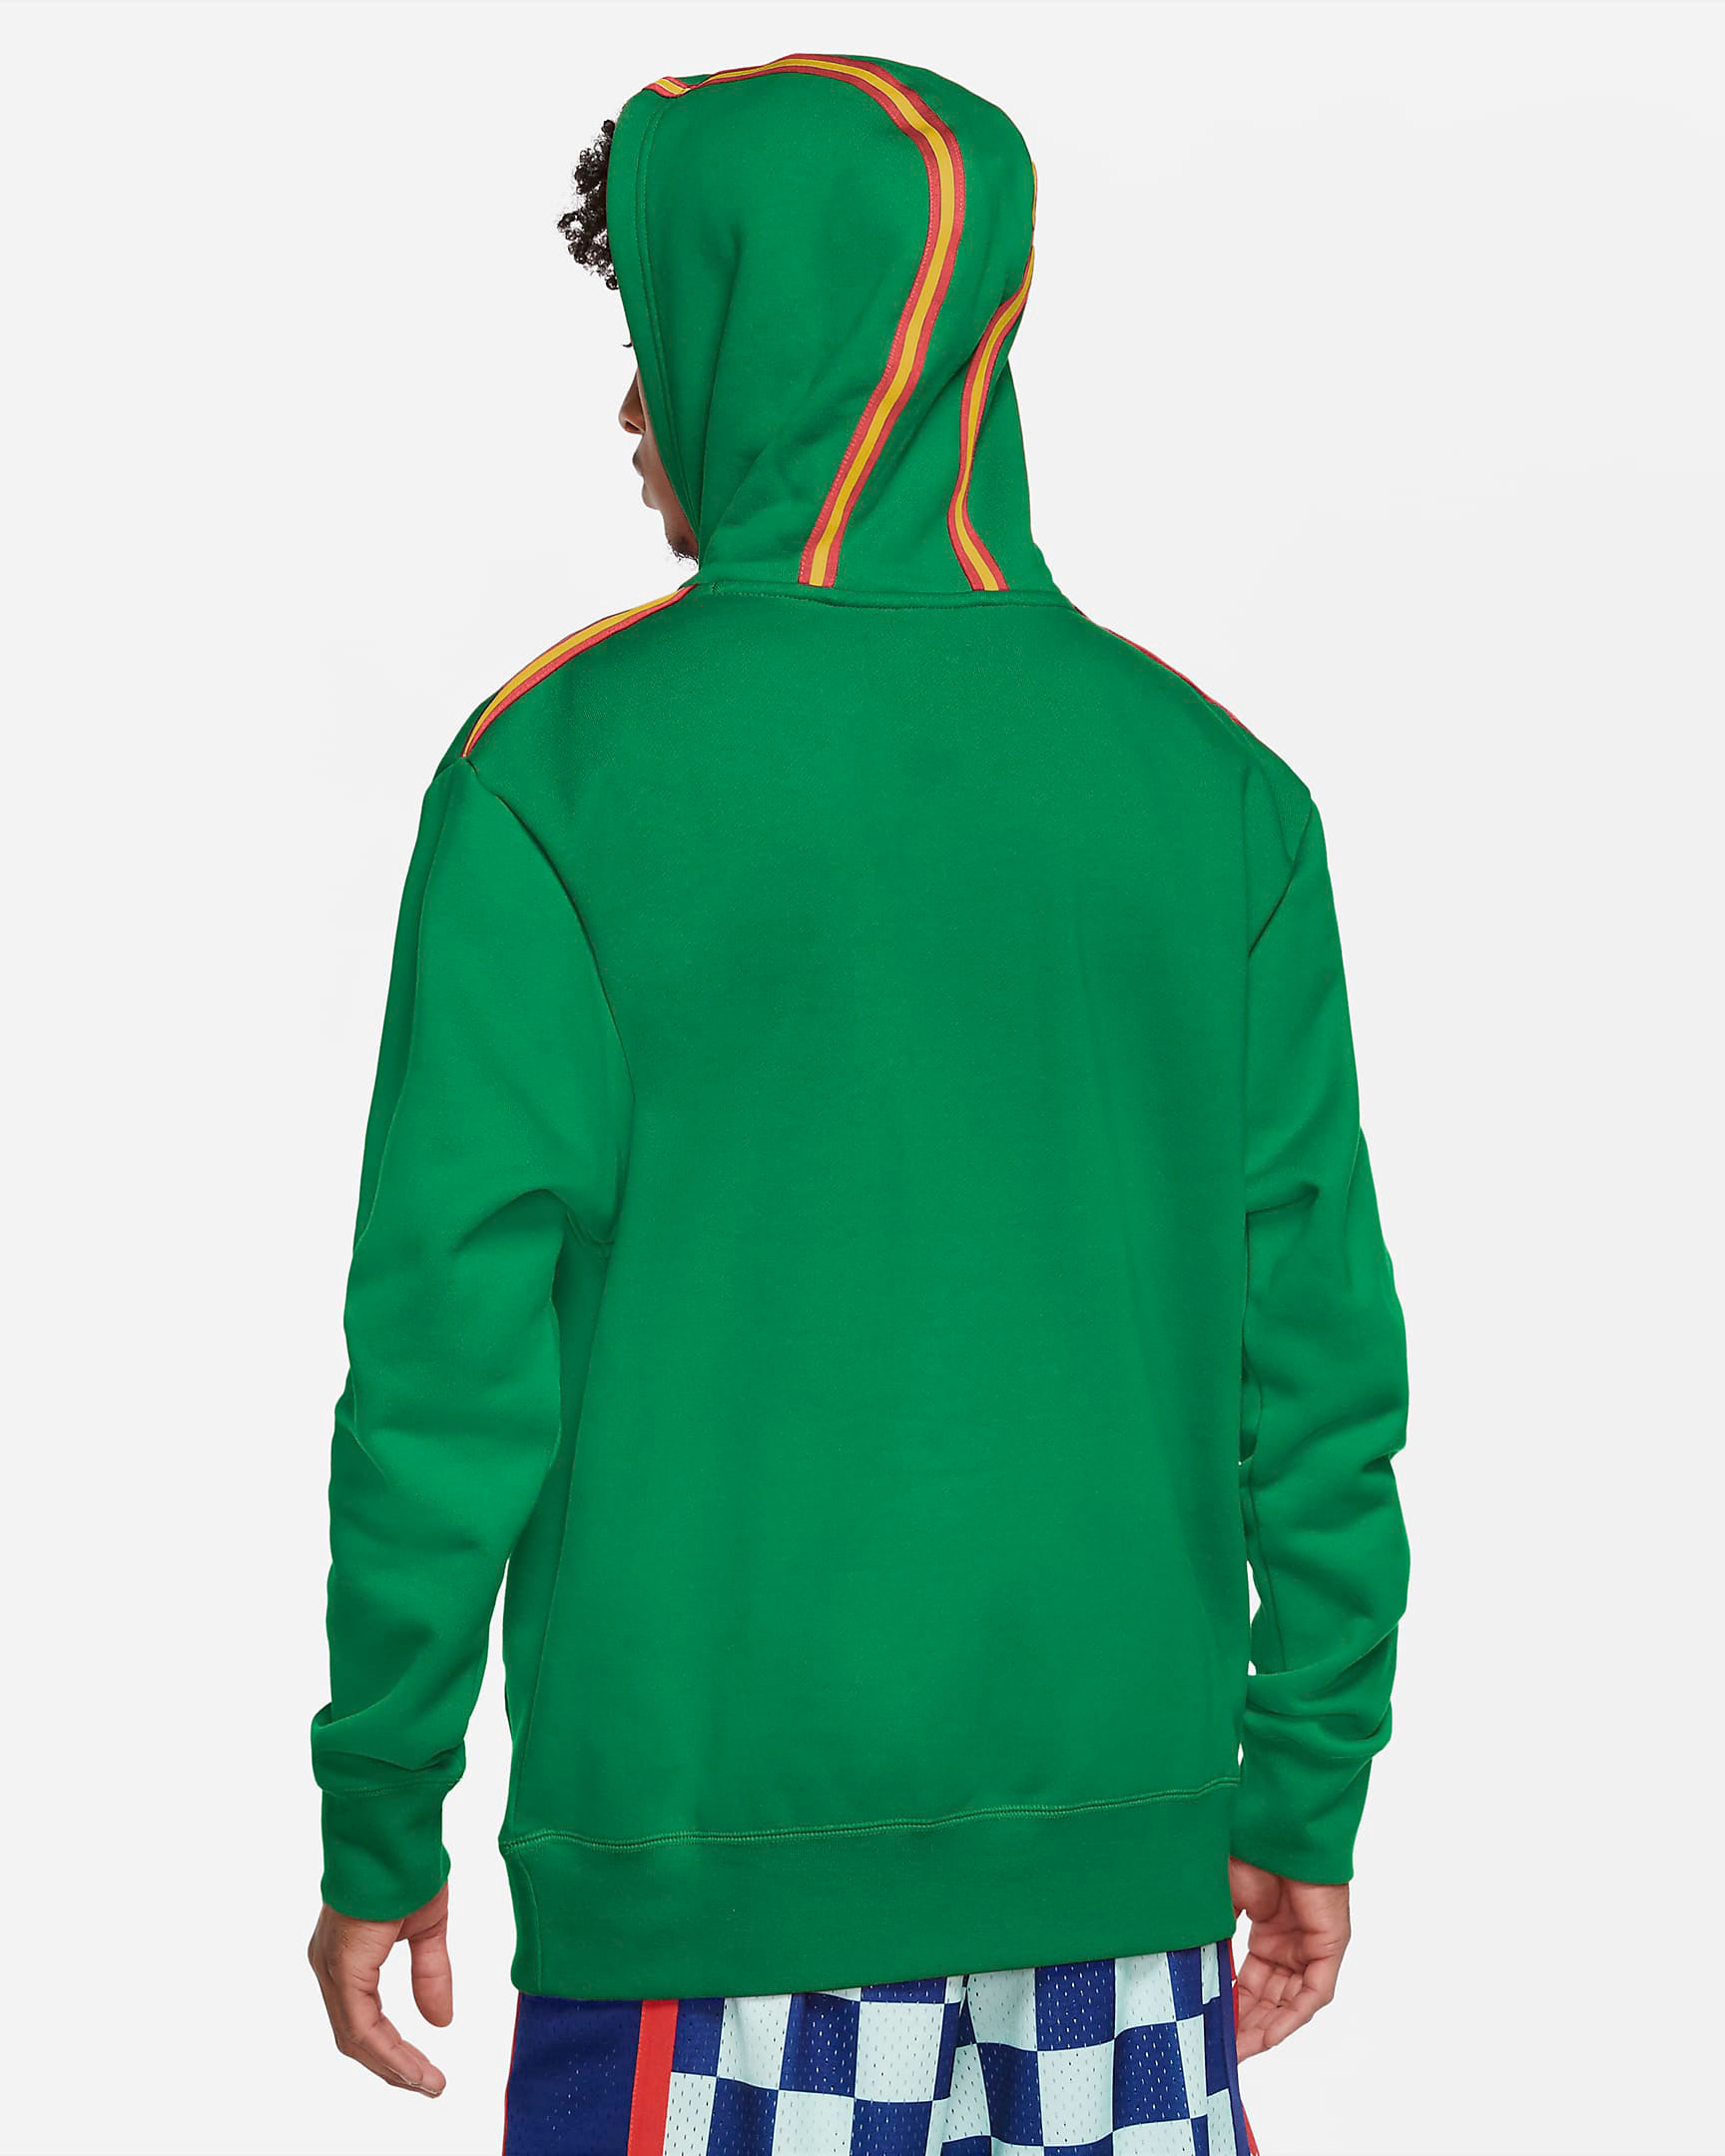 air-jordan-5-oregon-apple-green-hoodie-match-3